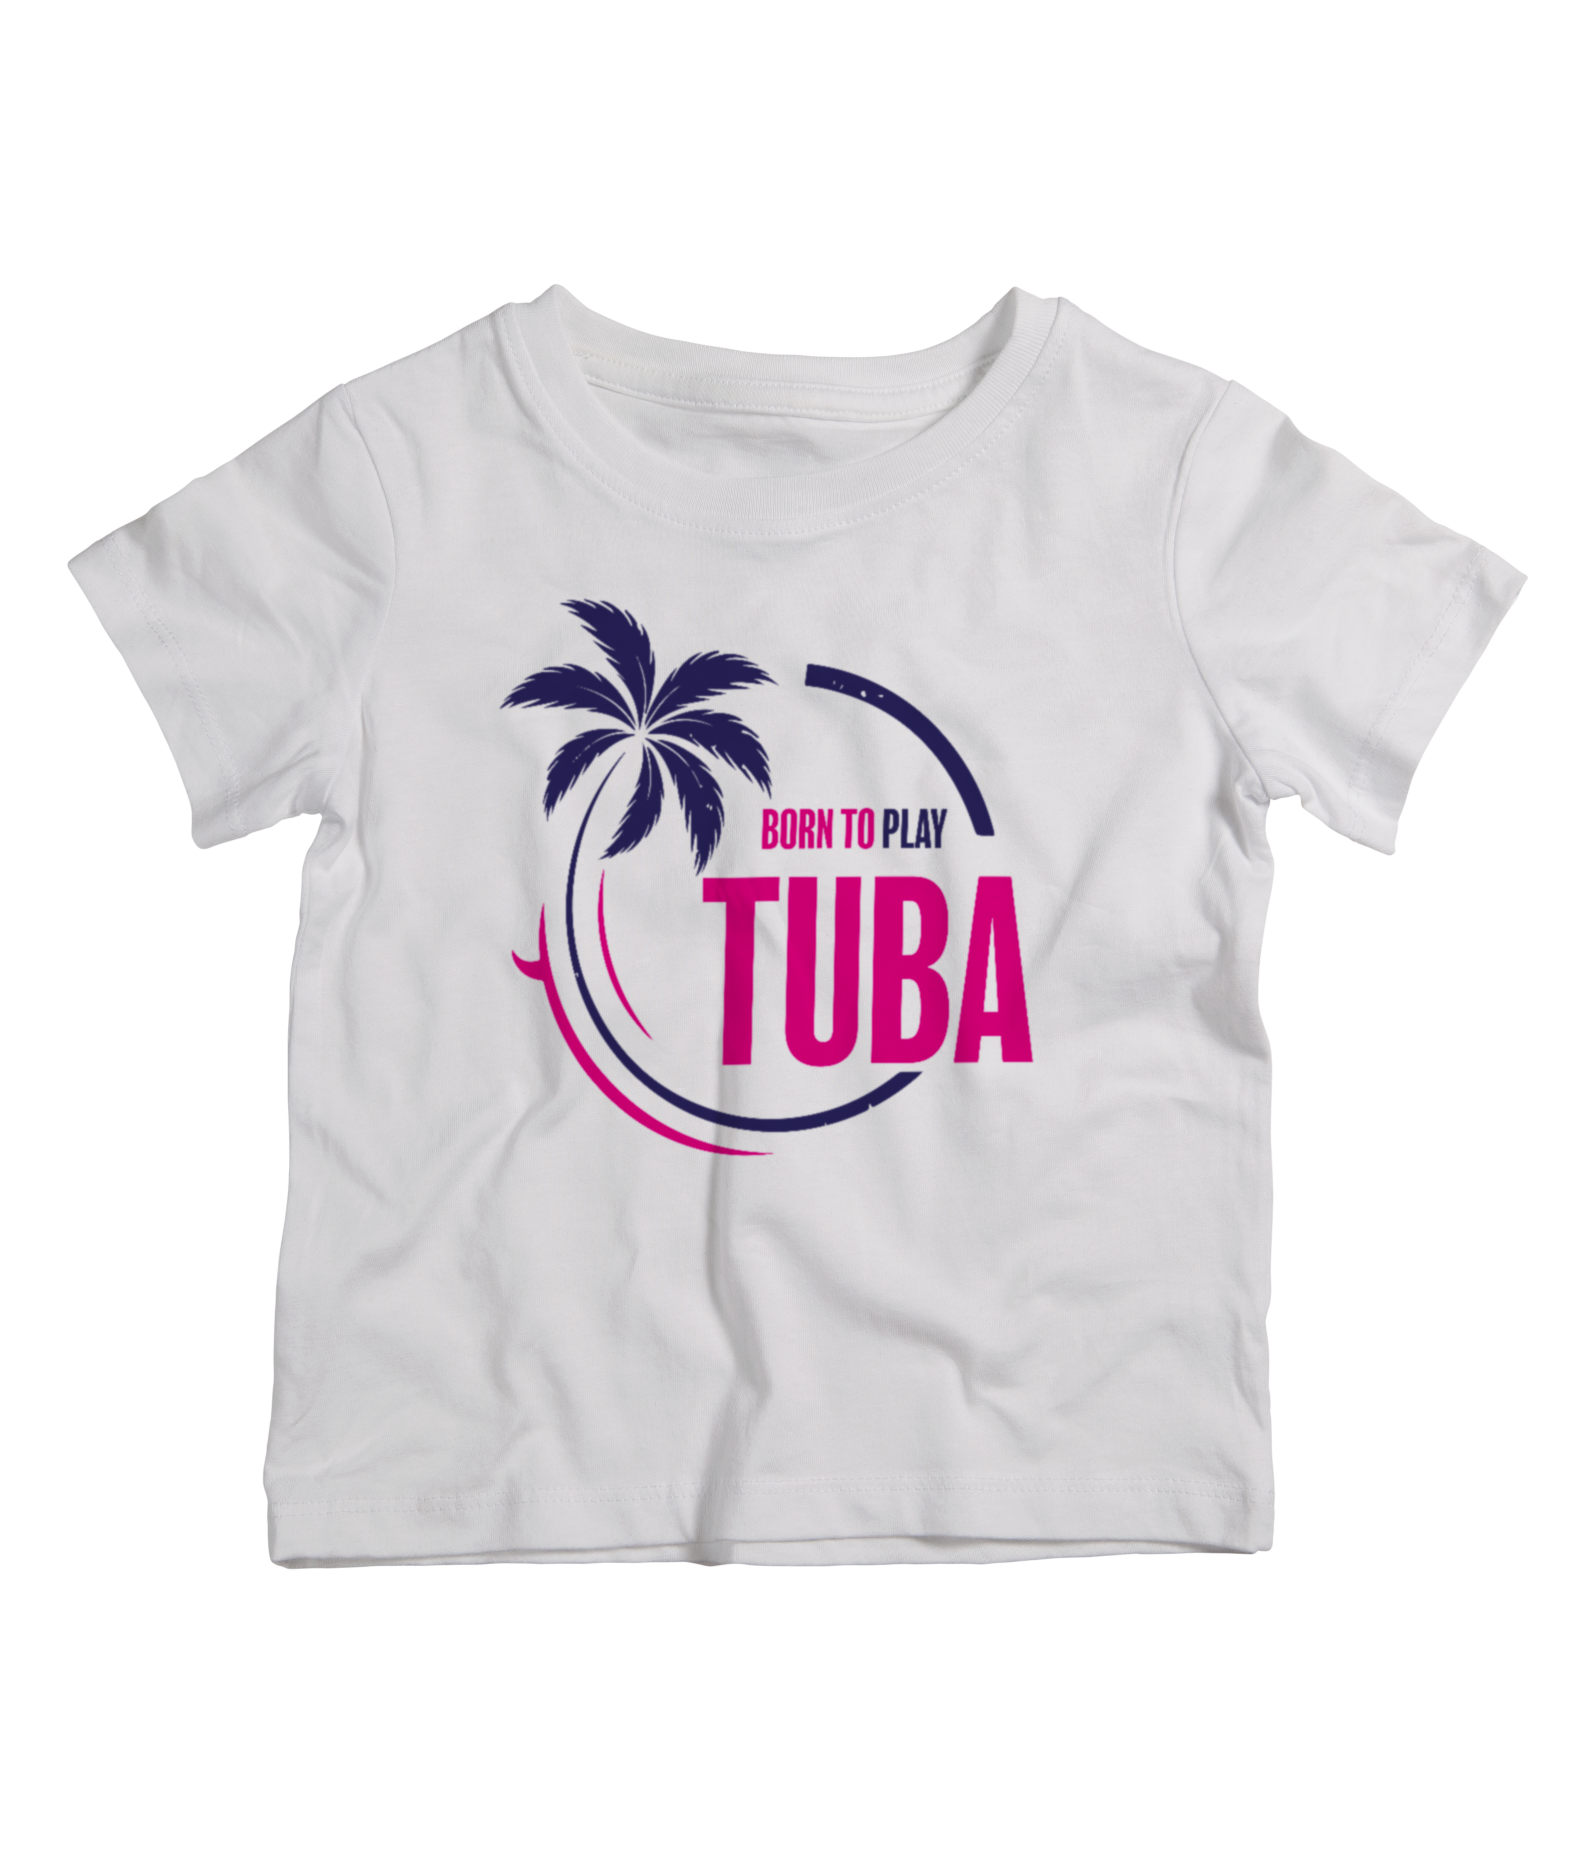 TEE-SHIRT BORN TO PLAY TUBA